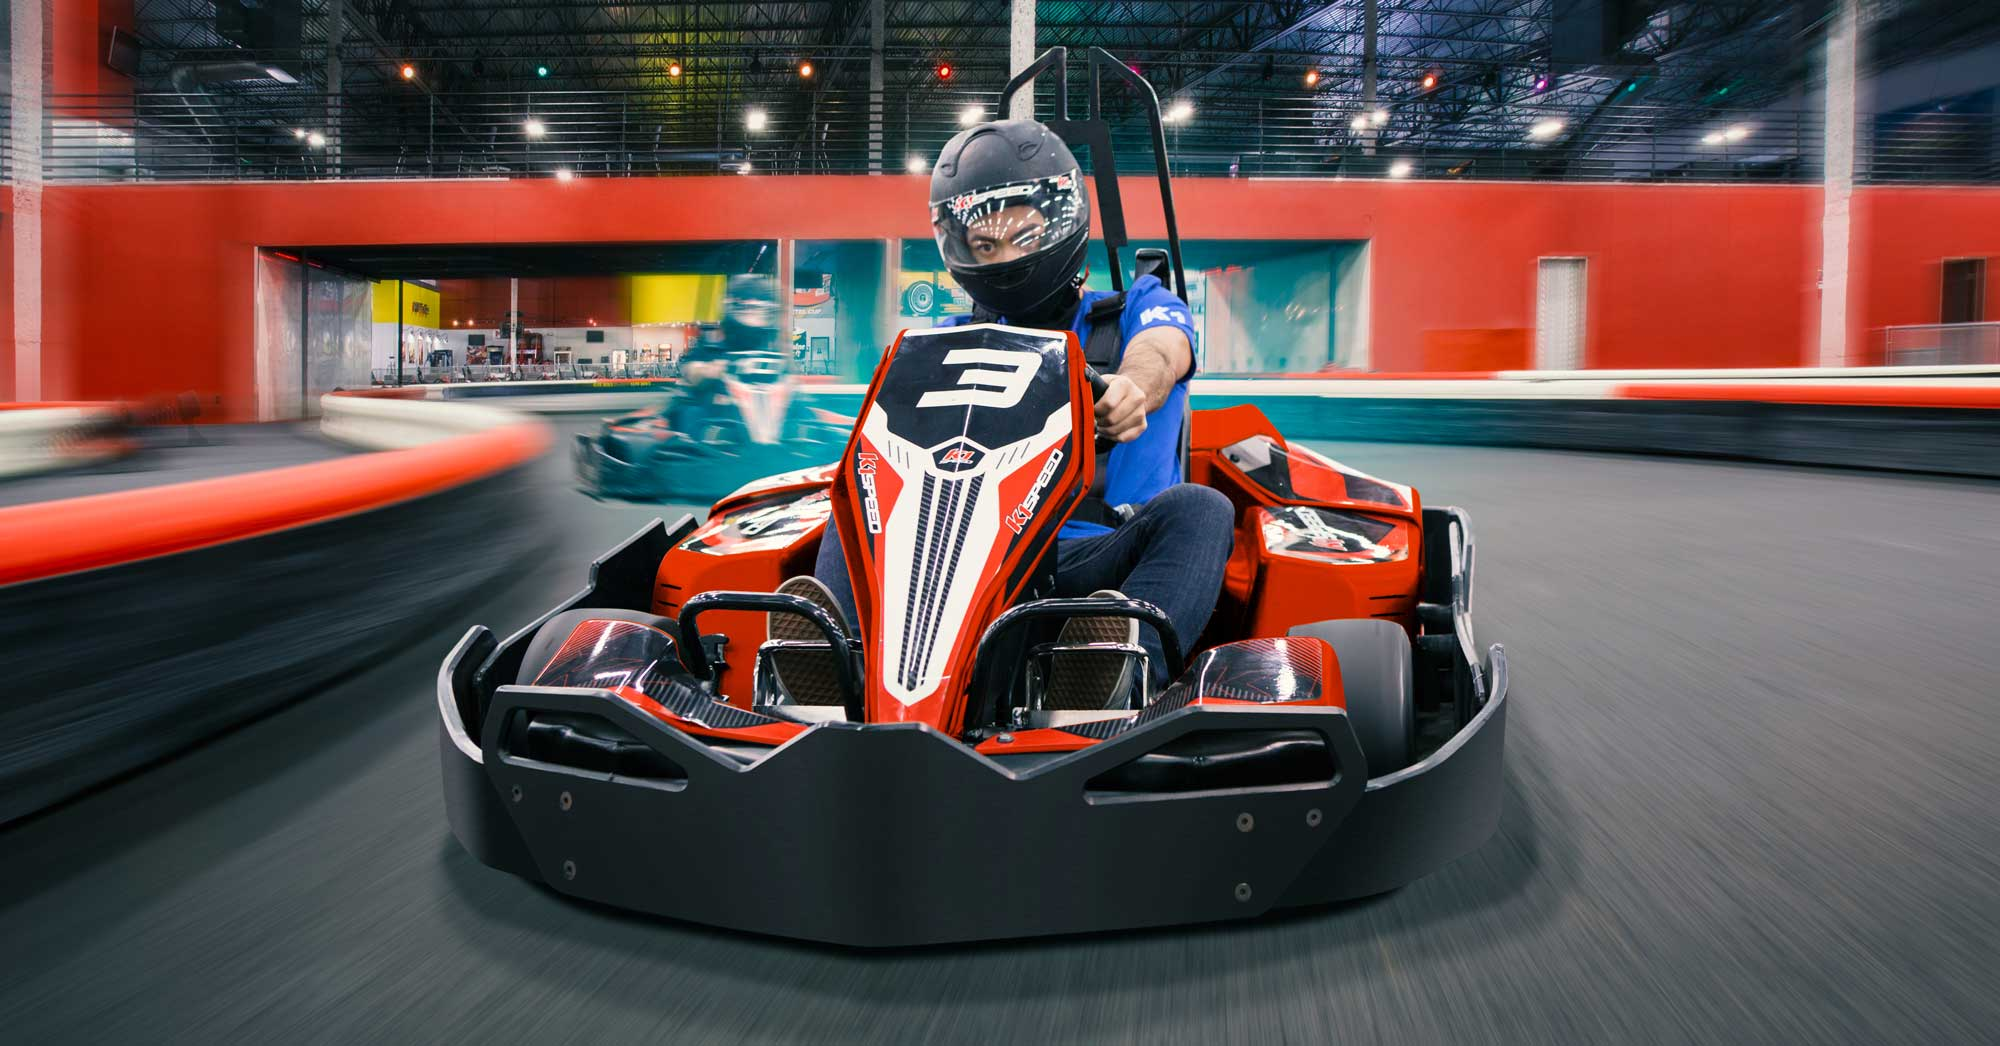 K1 Speed Indoor Go Kart Racing Anaheim